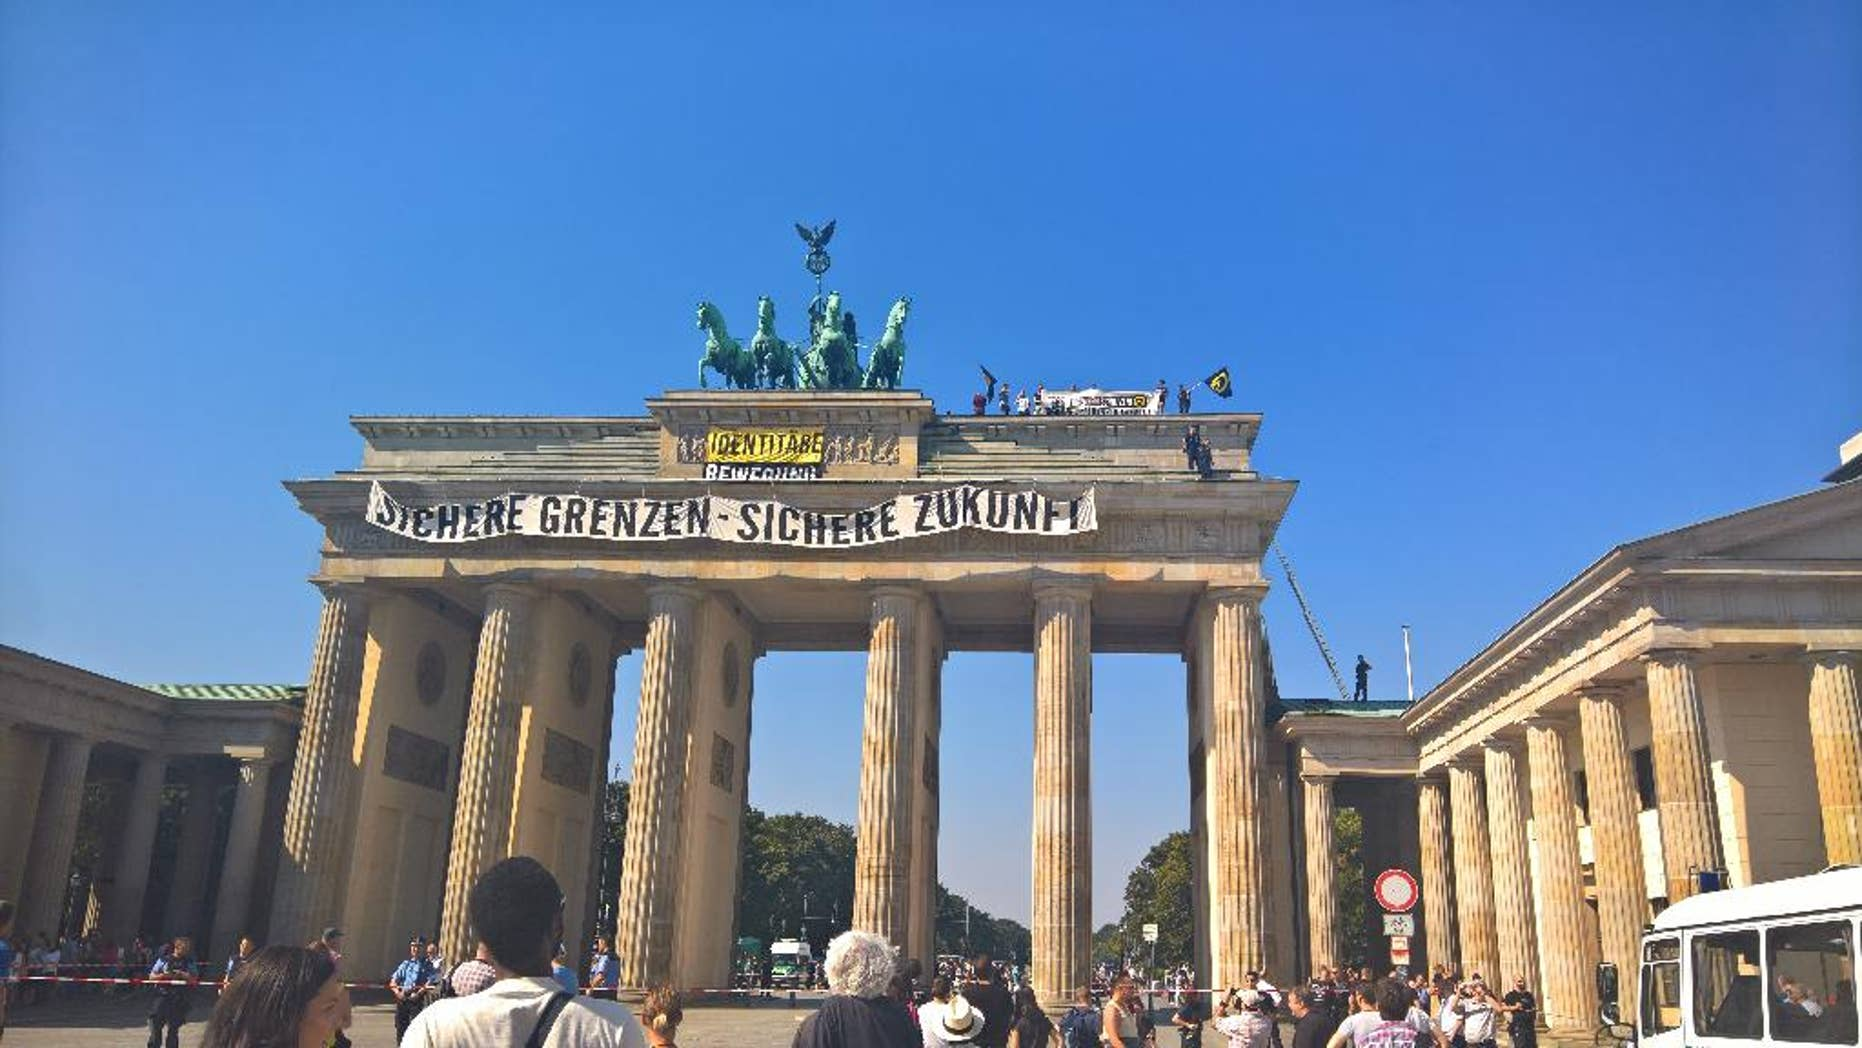 """Anti-Islam activists have staged an hour-long demonstration atop Berlin's Brandenburg Gate Saturday Aug. 27, 2016. The protesters unfurled a banner calling for """"secure borders"""" in Germany. Police said 15 people were briefly detained over the protest and are likely to face charges of trespassing, harassment and breaching laws on public assembly Banner reads : Secure Borders - Secure Future. (AP Photo Frank Jordans)"""